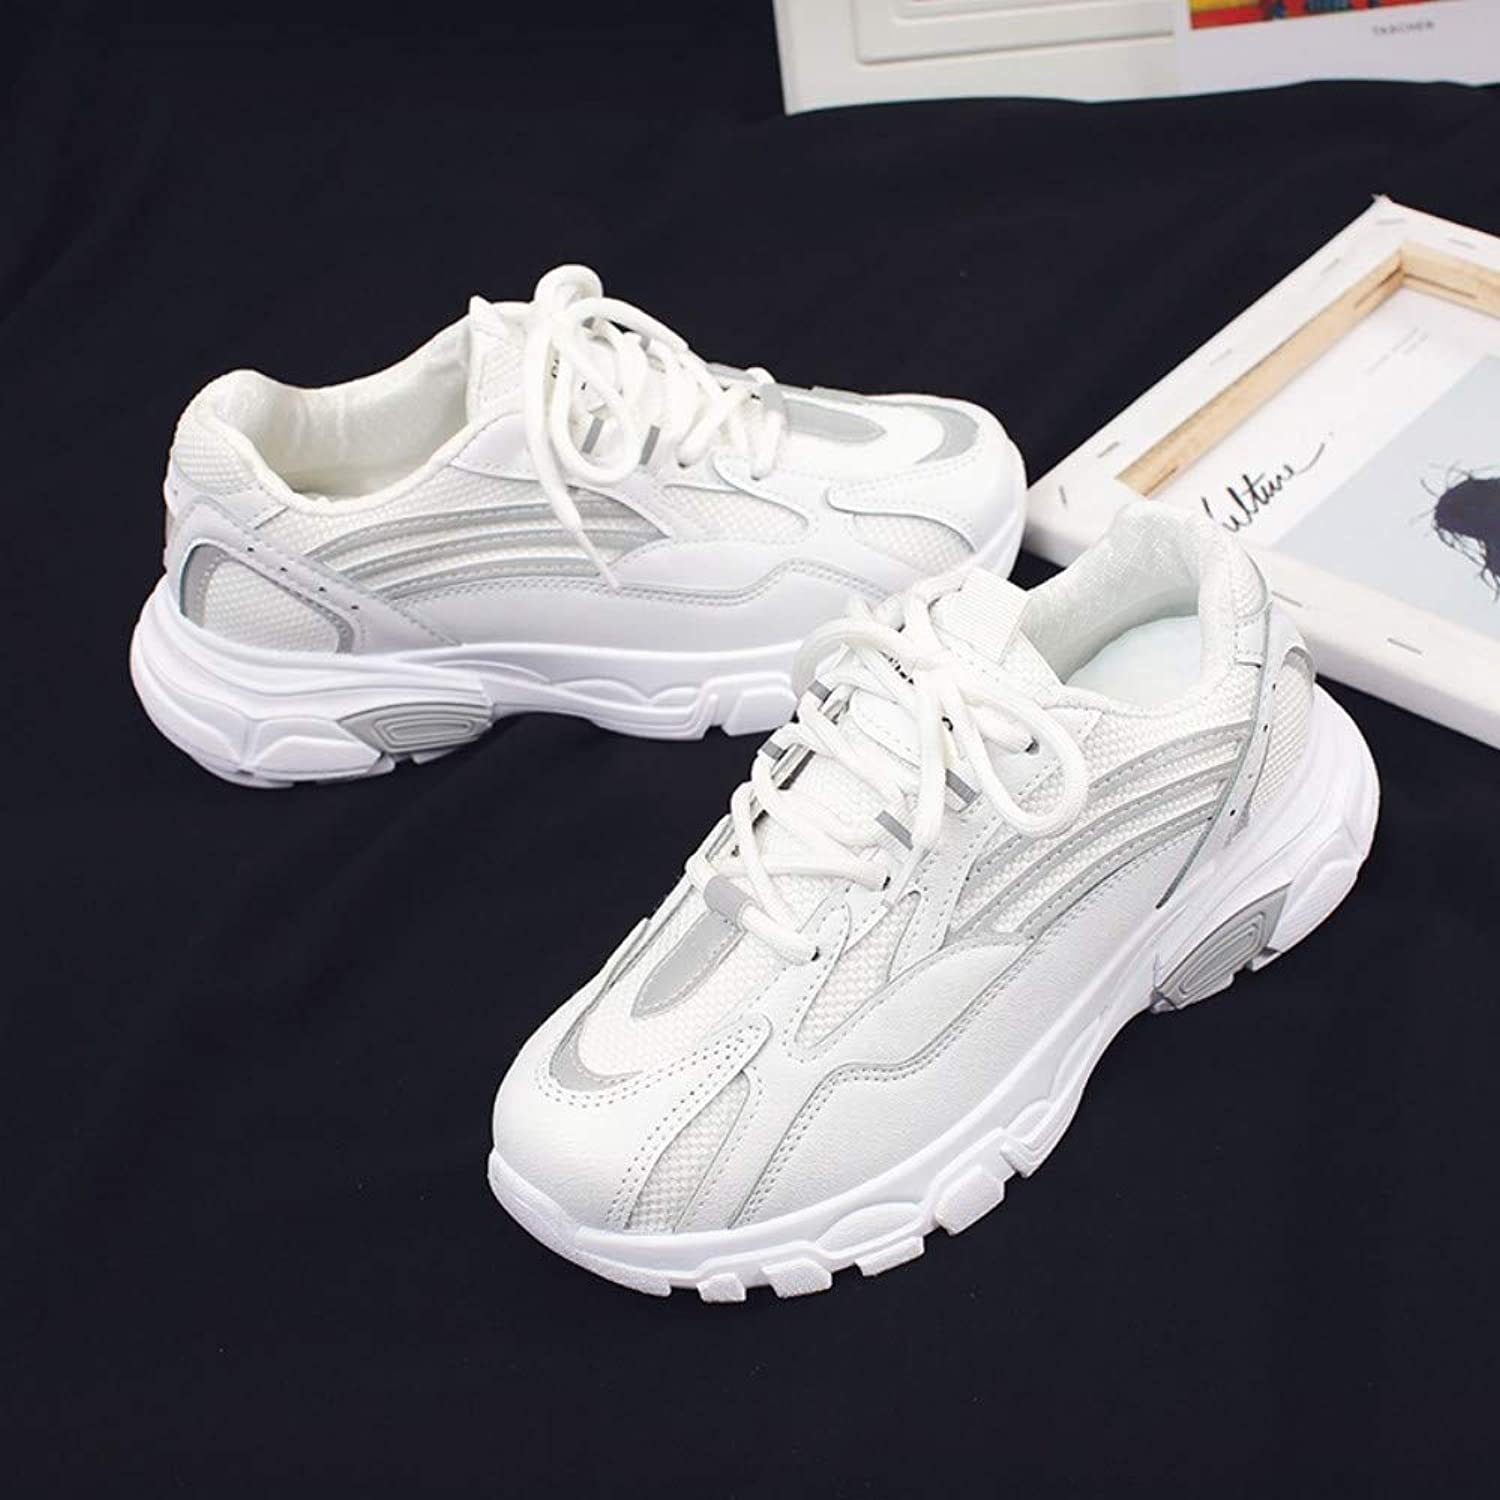 ZHIJINLI Sneakers fitness shoes sneakers running shoes low to help comfortable casual shoes, 37 EU